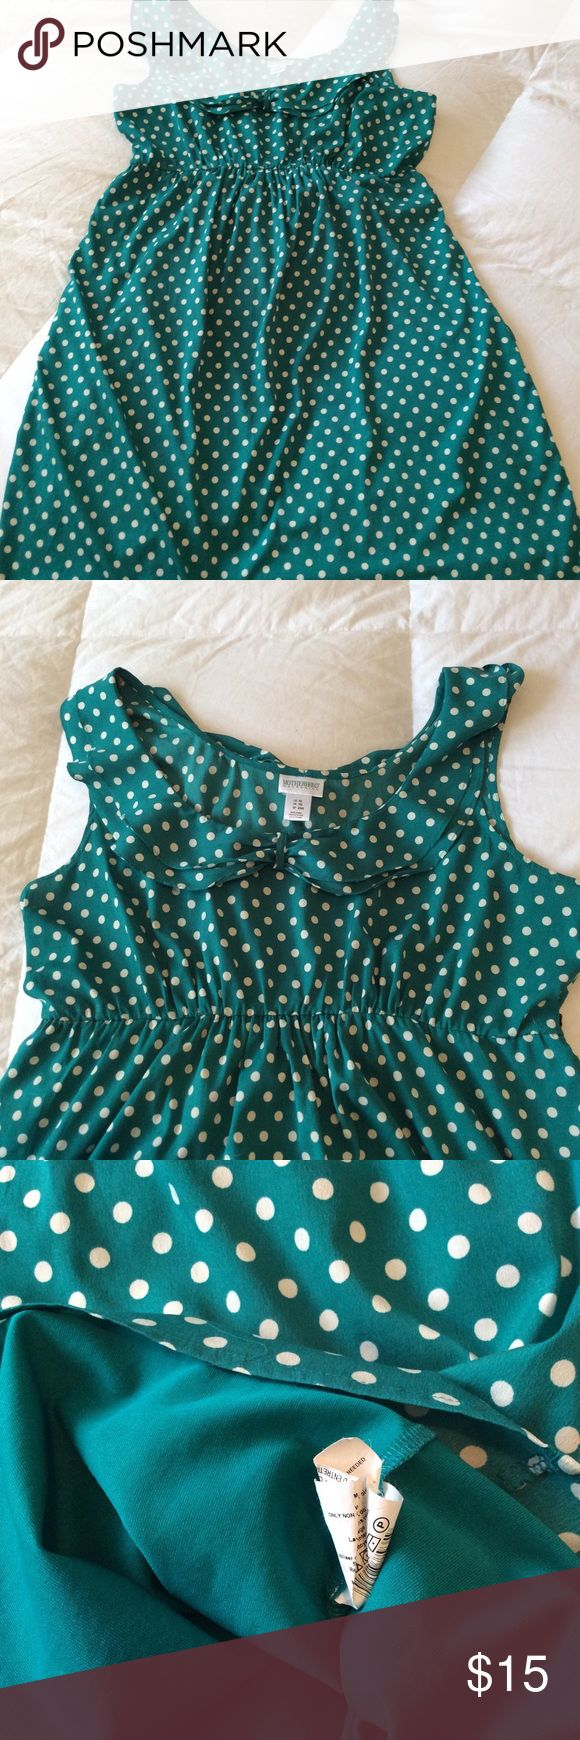 Motherhood Maternity Polka Dot Dress 👗 XL Cute motherhood Maternity dress. Missing the waist tie but I'm sure you can pair it with something nice or just cut the loops off. Cute for a Maternity shoot. Lined. Size XL. 100% Polyester. This dress is green and white. Motherhood Maternity Dresses